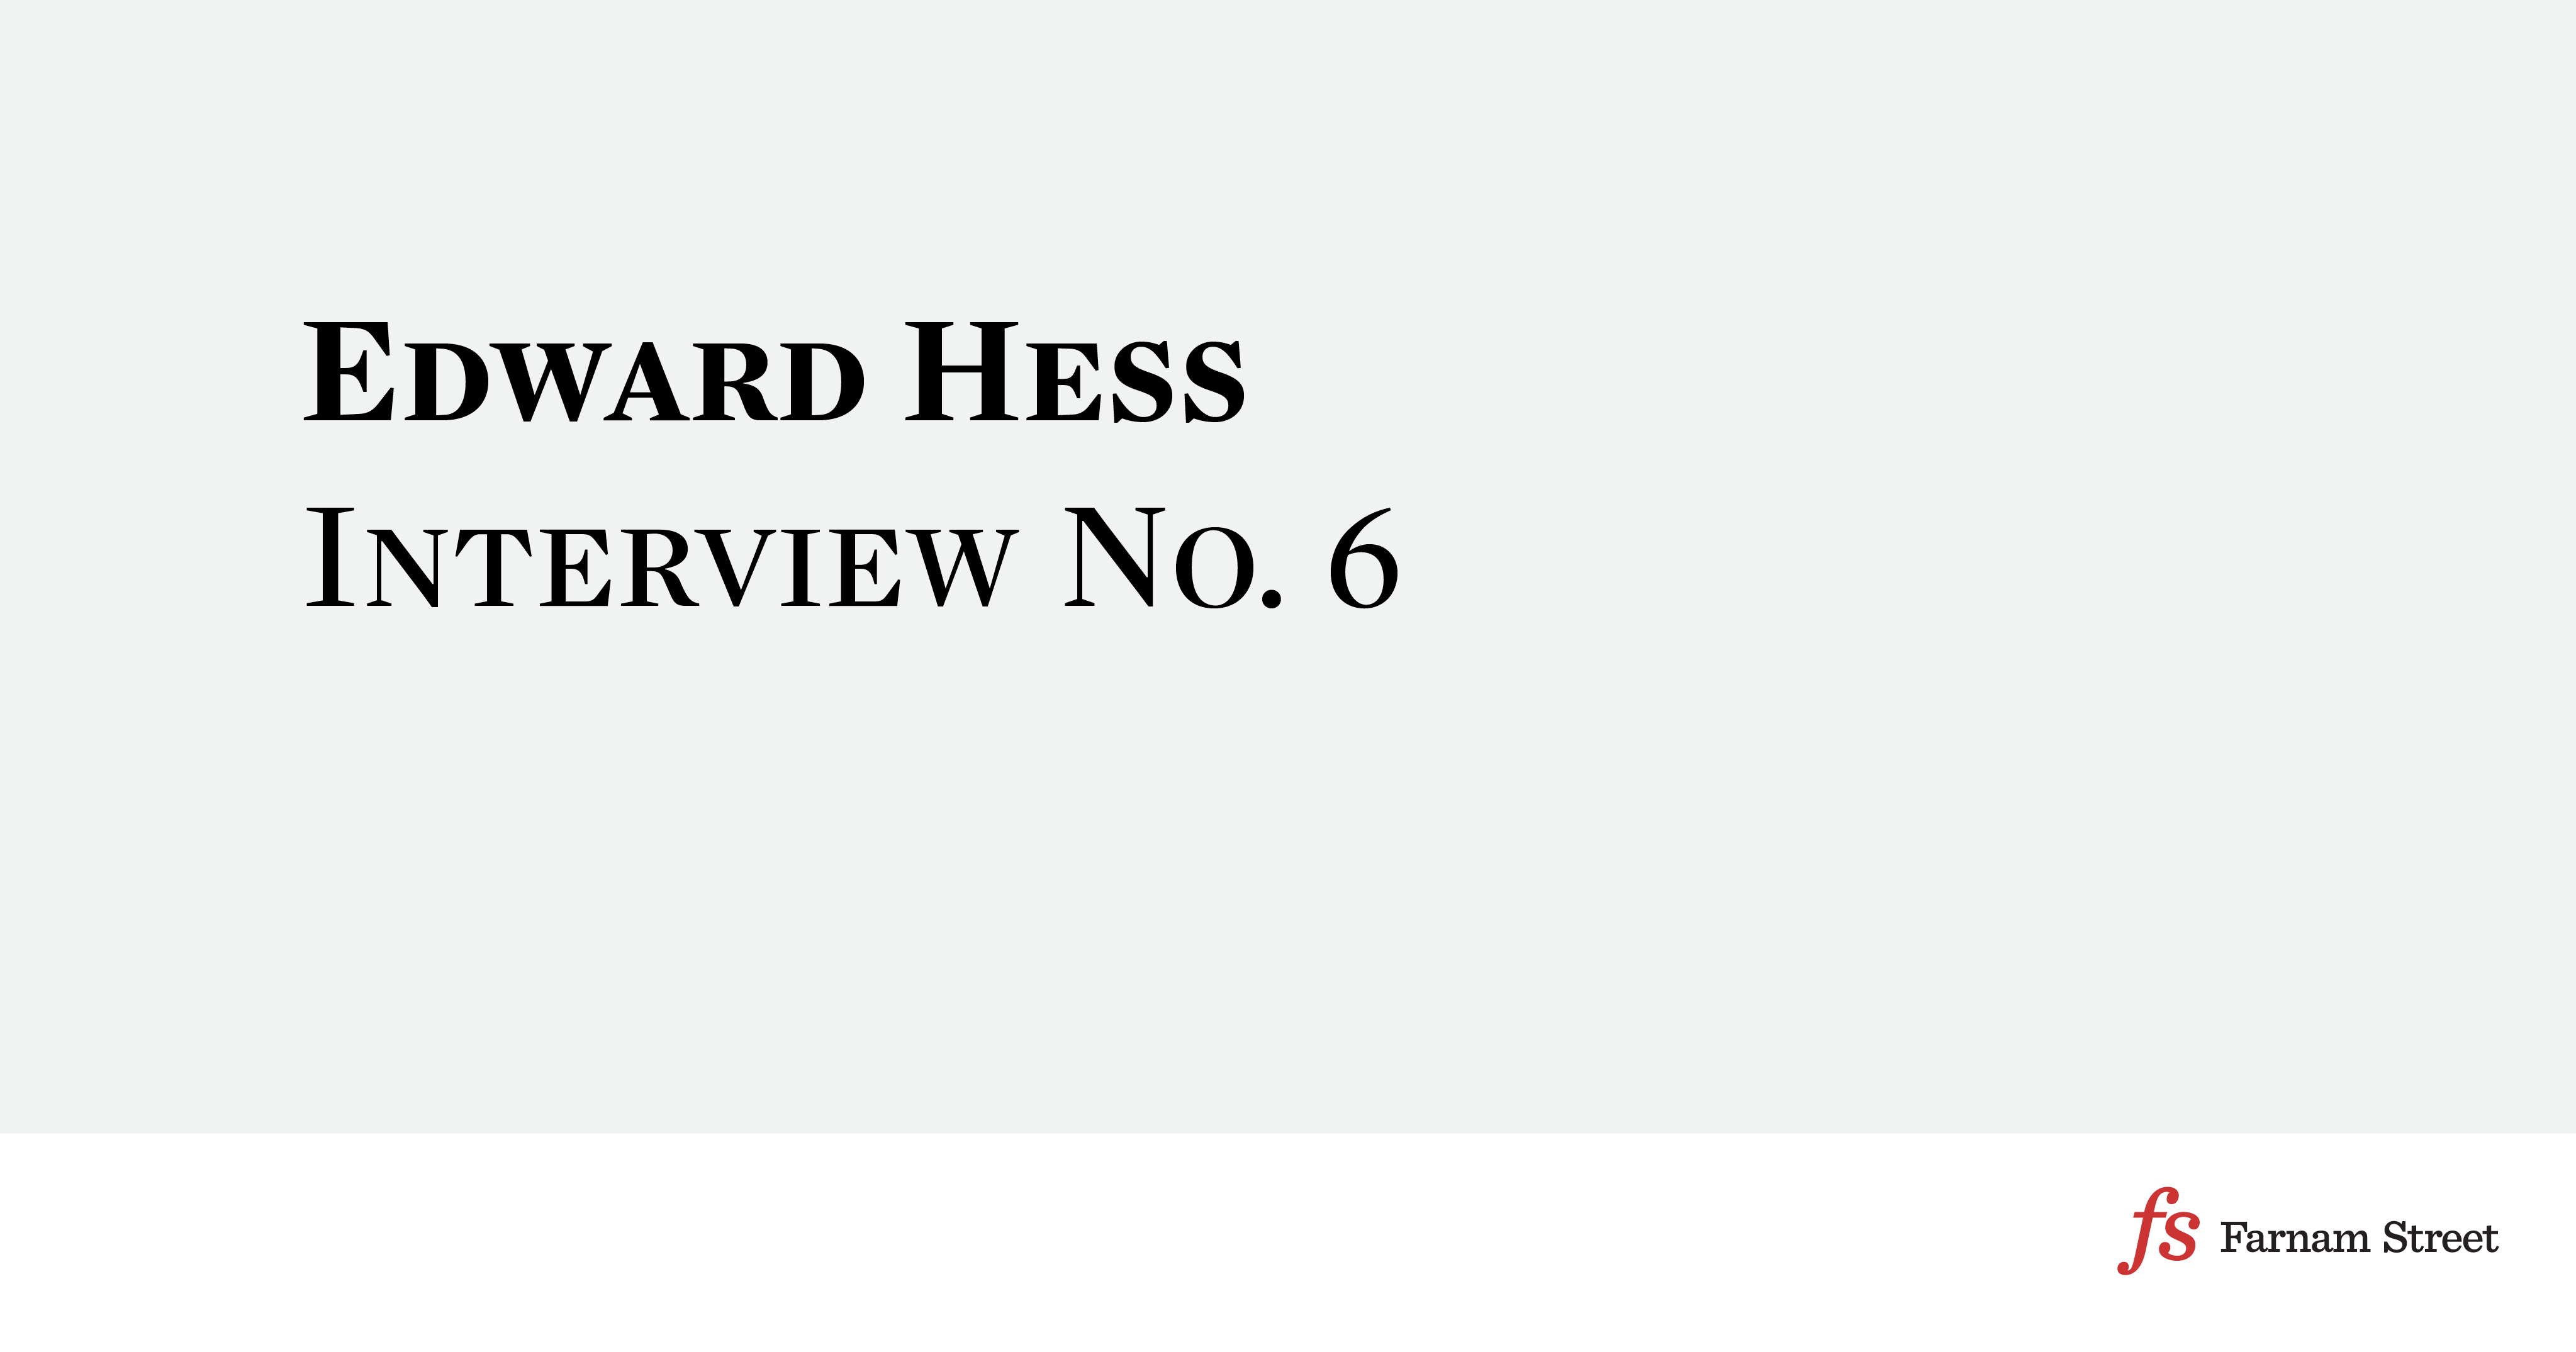 edward hess interview no